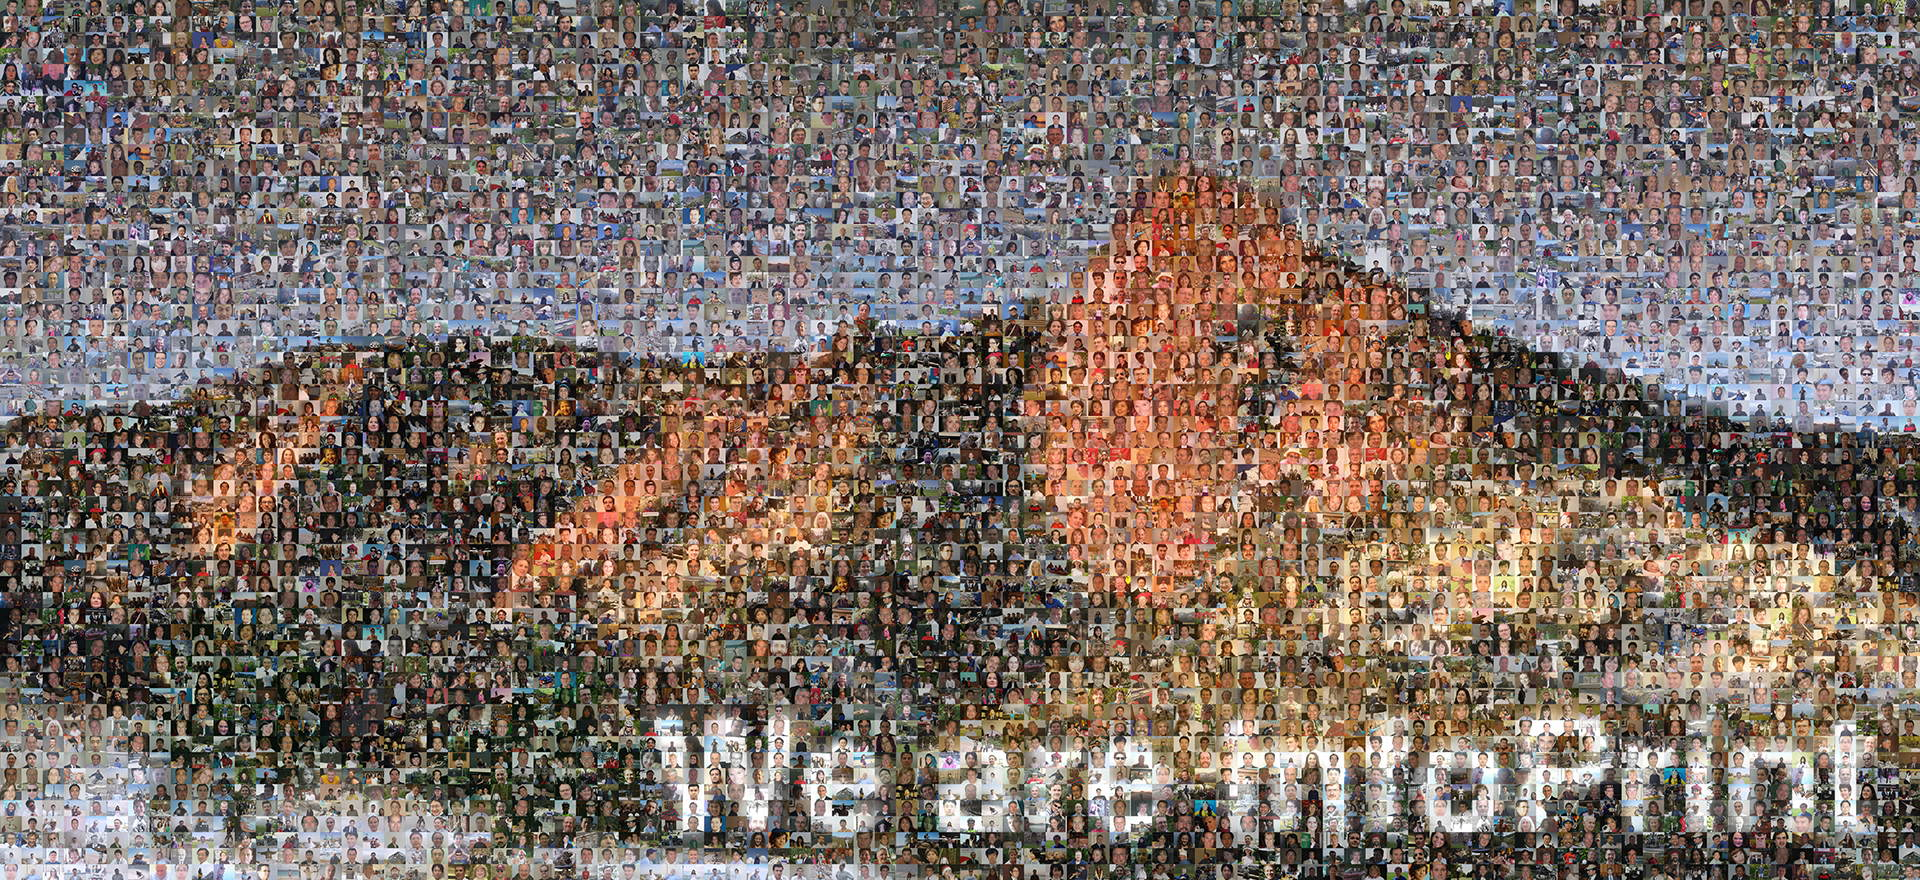 photo mosaic 44' x 96' canvas mural created using over 1600 employee submitted photos